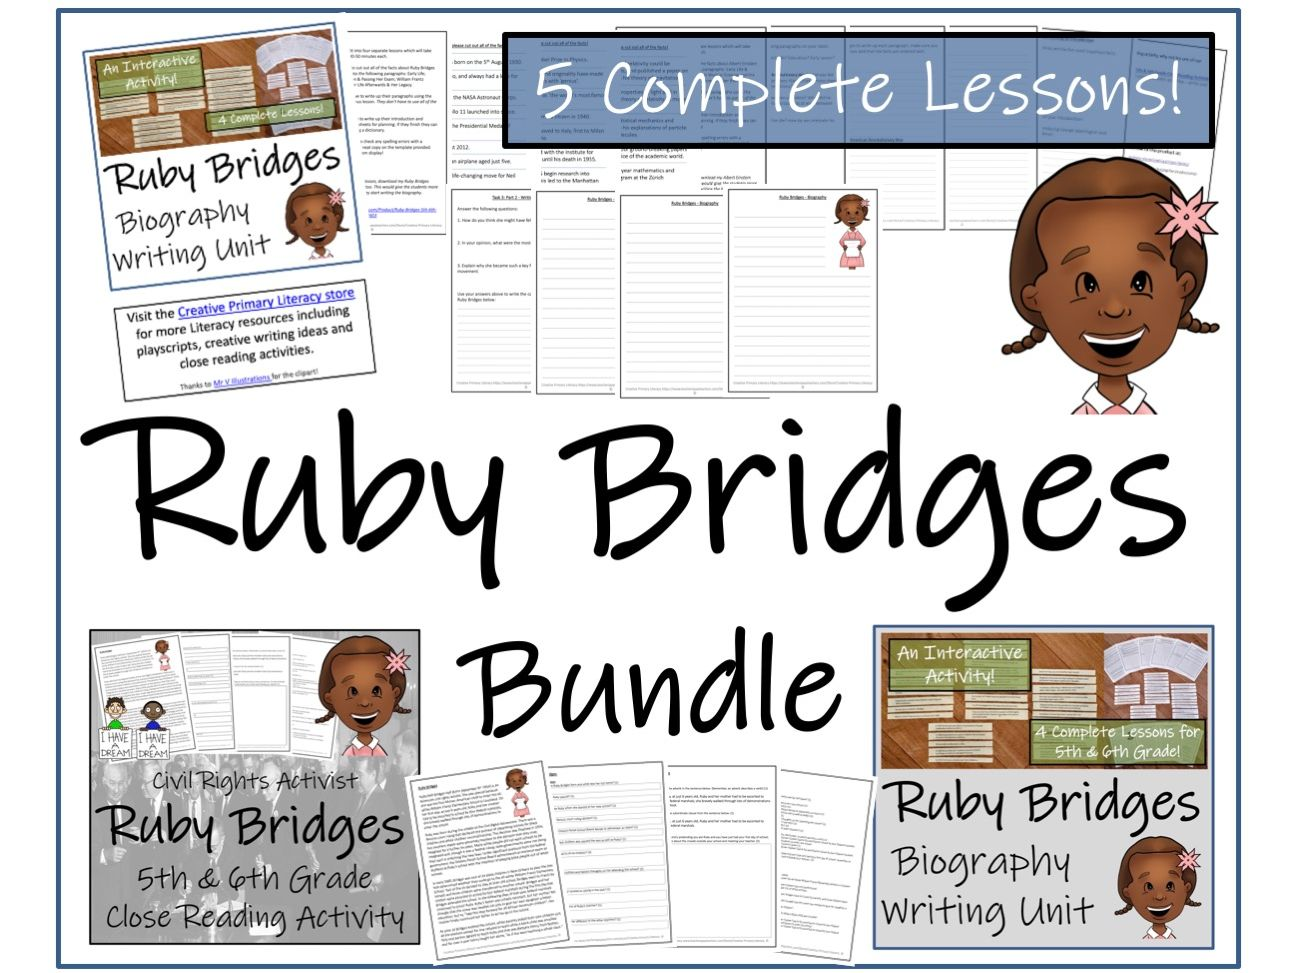 UKS2 History - Bundle of Activities about Ruby Bridges